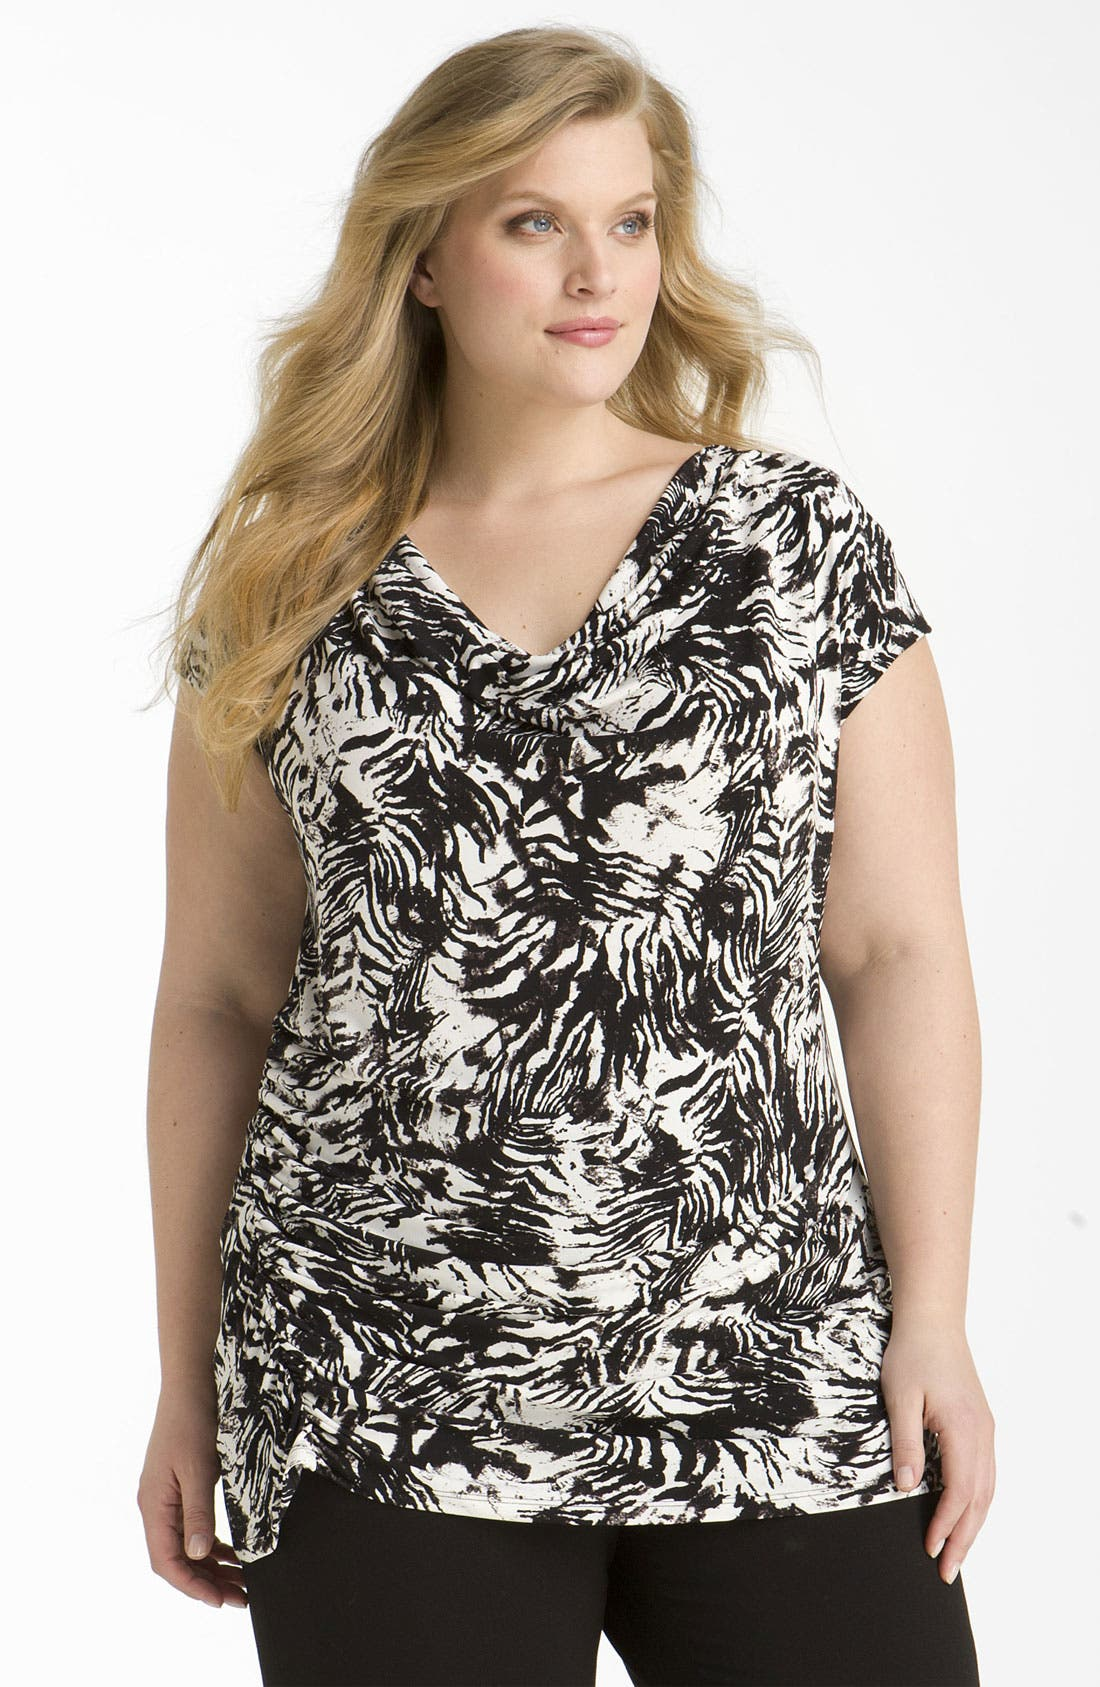 Alternate Image 1 Selected - Vince Camuto 'Zebra Skin' Cap Sleeve Top (Plus)